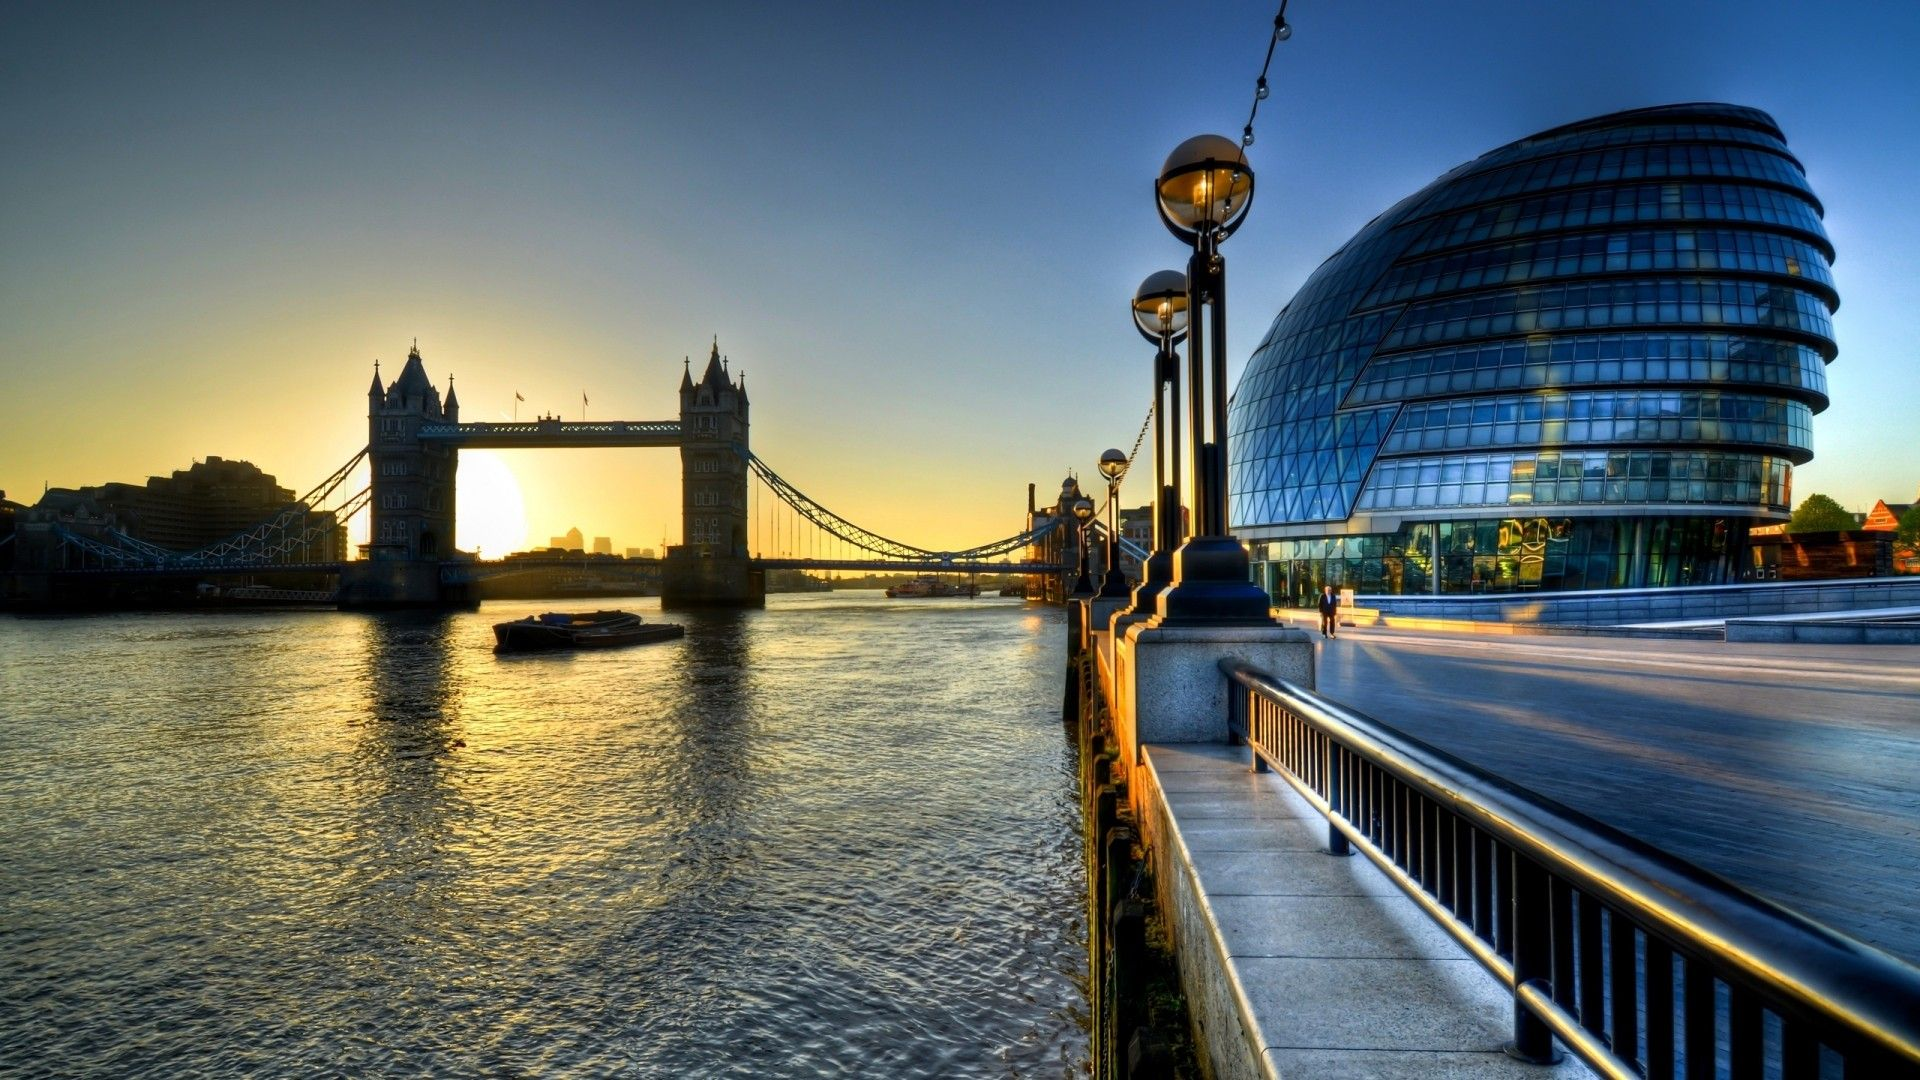 Architecture Wallpaper london-landscape-architecture-wallpapers-hd-architecture-picture